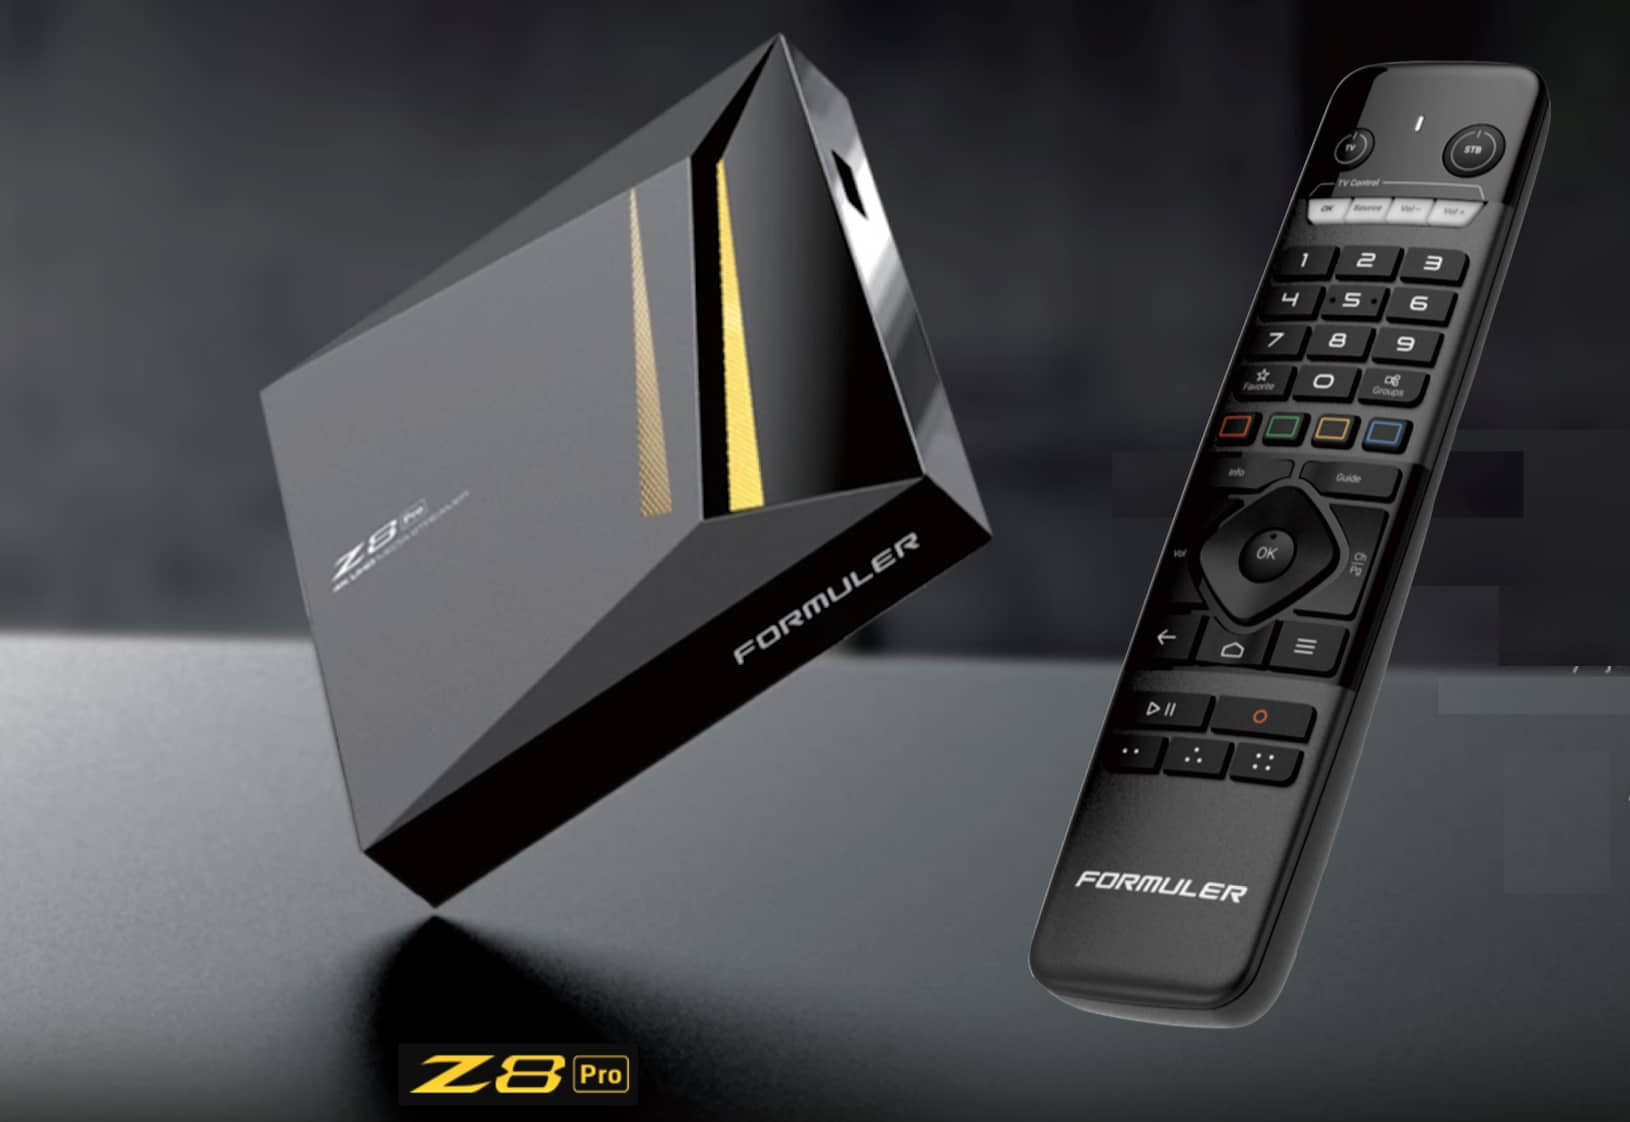 For the best quality, Android TV box try Formuler Z8 Pro